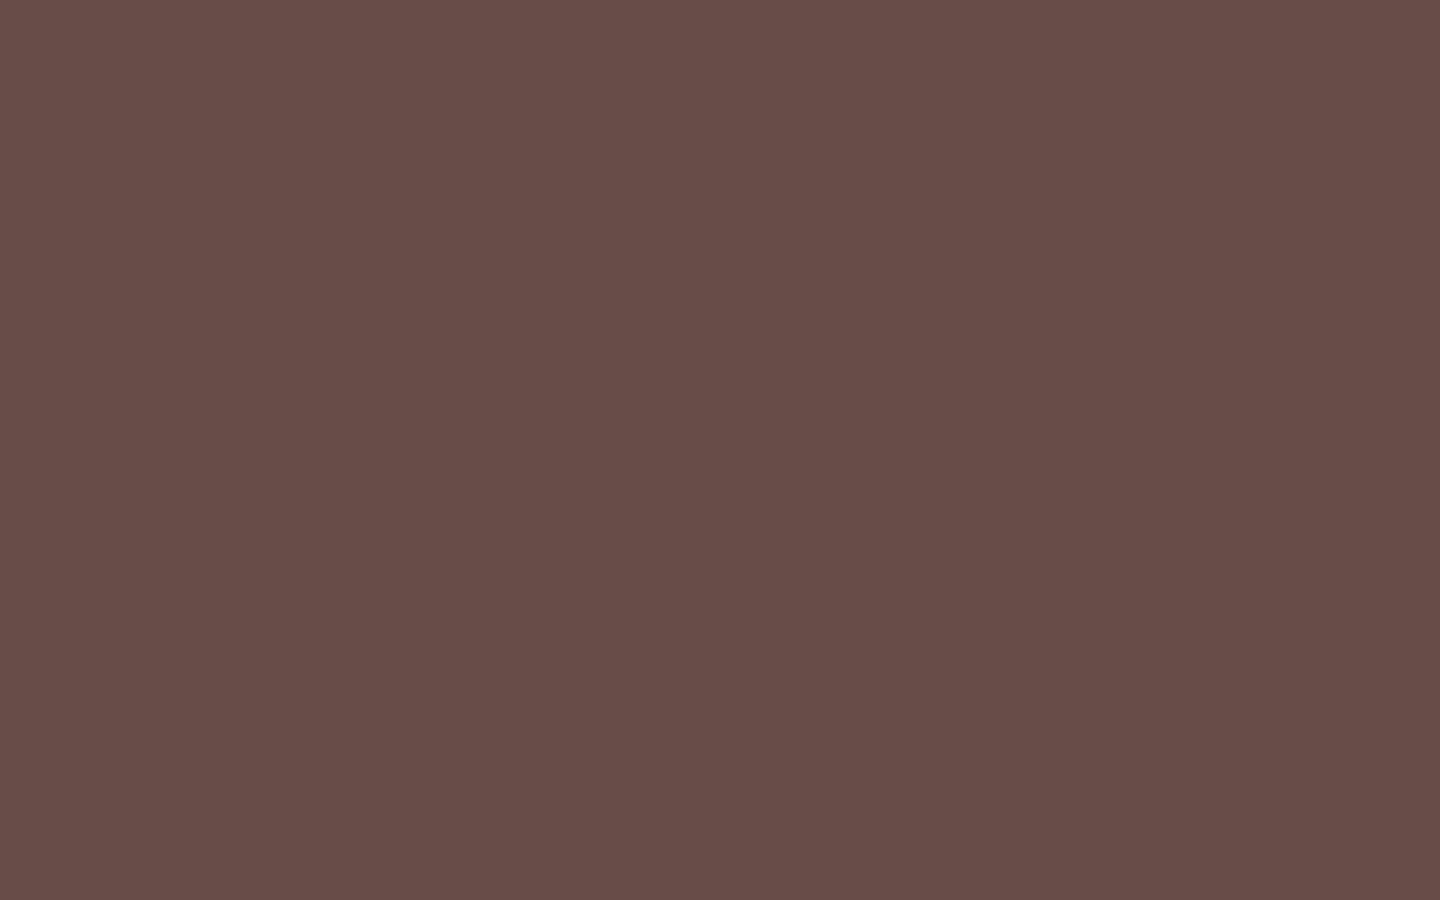 1440x900 Medium Taupe Solid Color Background